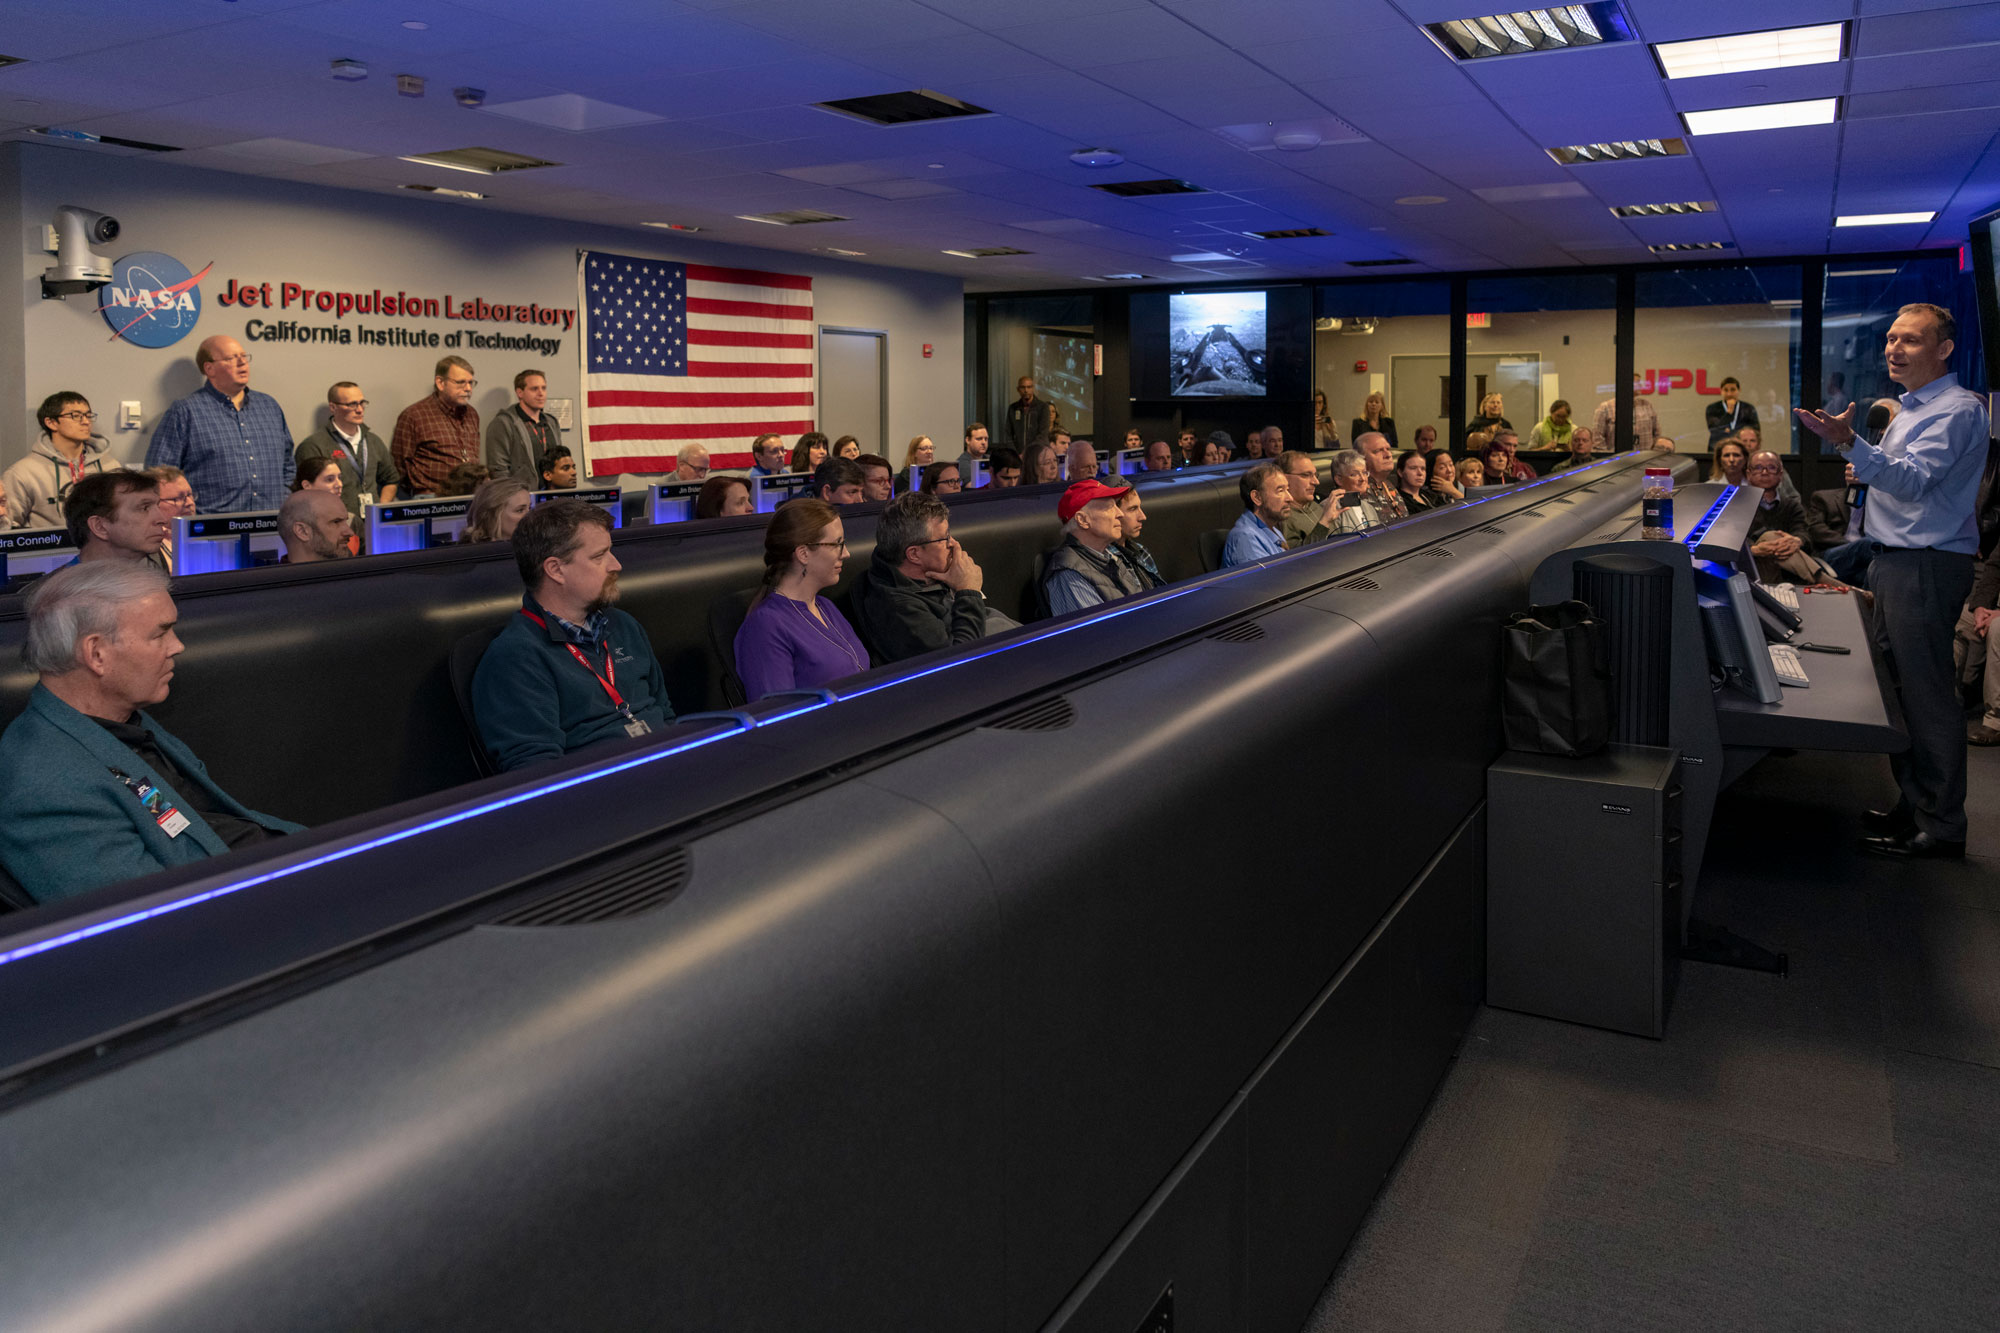 NASA Associate Administrator for Science Thomas Zurbuchen addressed the Opportunity rover team inside Mission Control at NASA's Jet Propulsion Laboratory in Pasadena, California, a few hours before the team made its last attempts to listen for the rover's signal from Mars. The image was taken on Feb. 12, 2019.